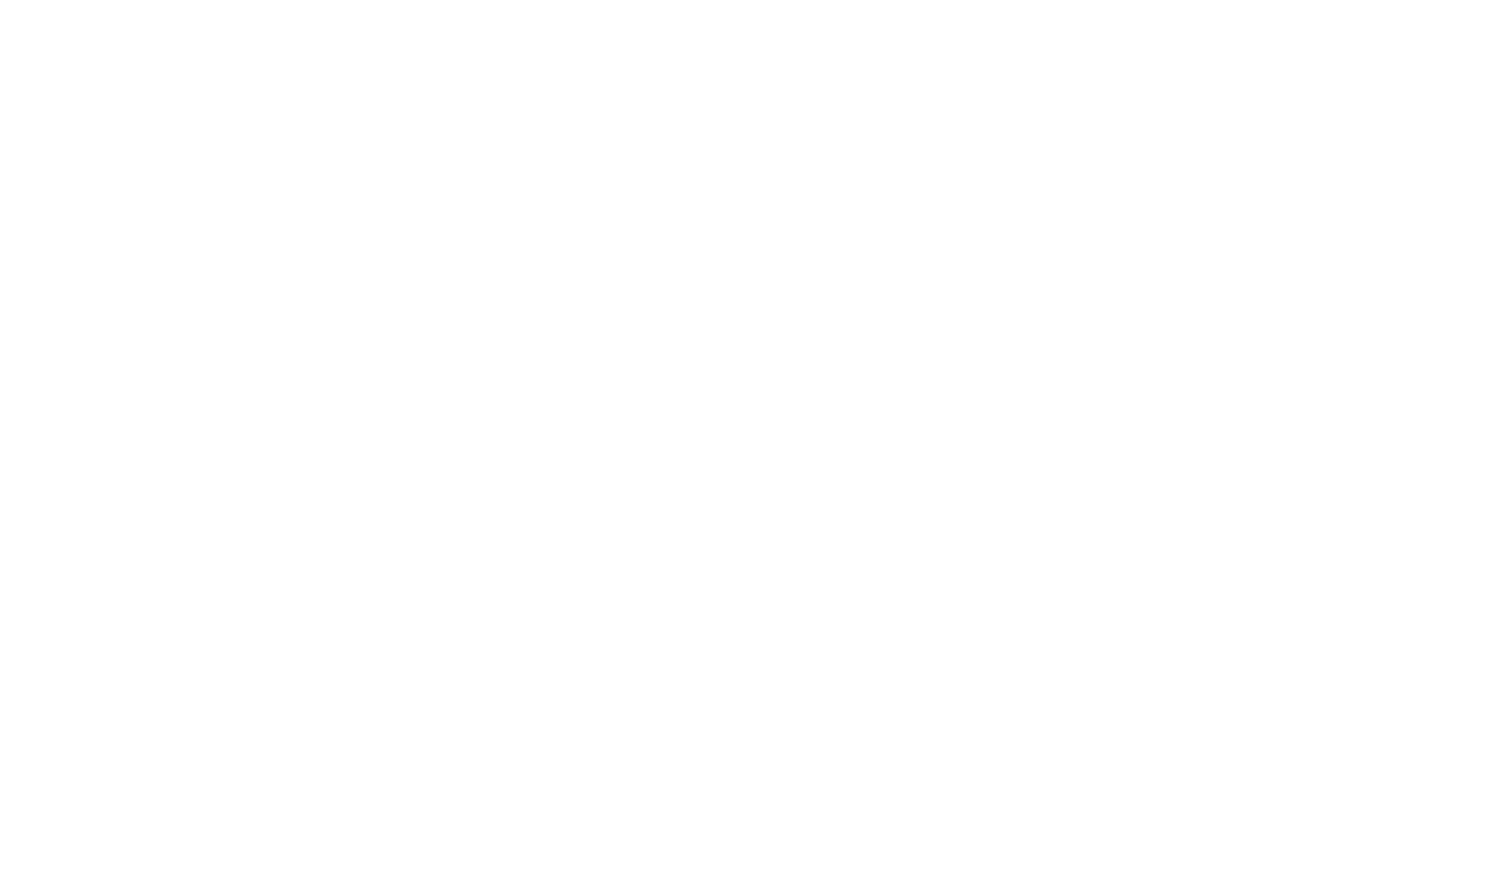 BAKERS ON MAIN